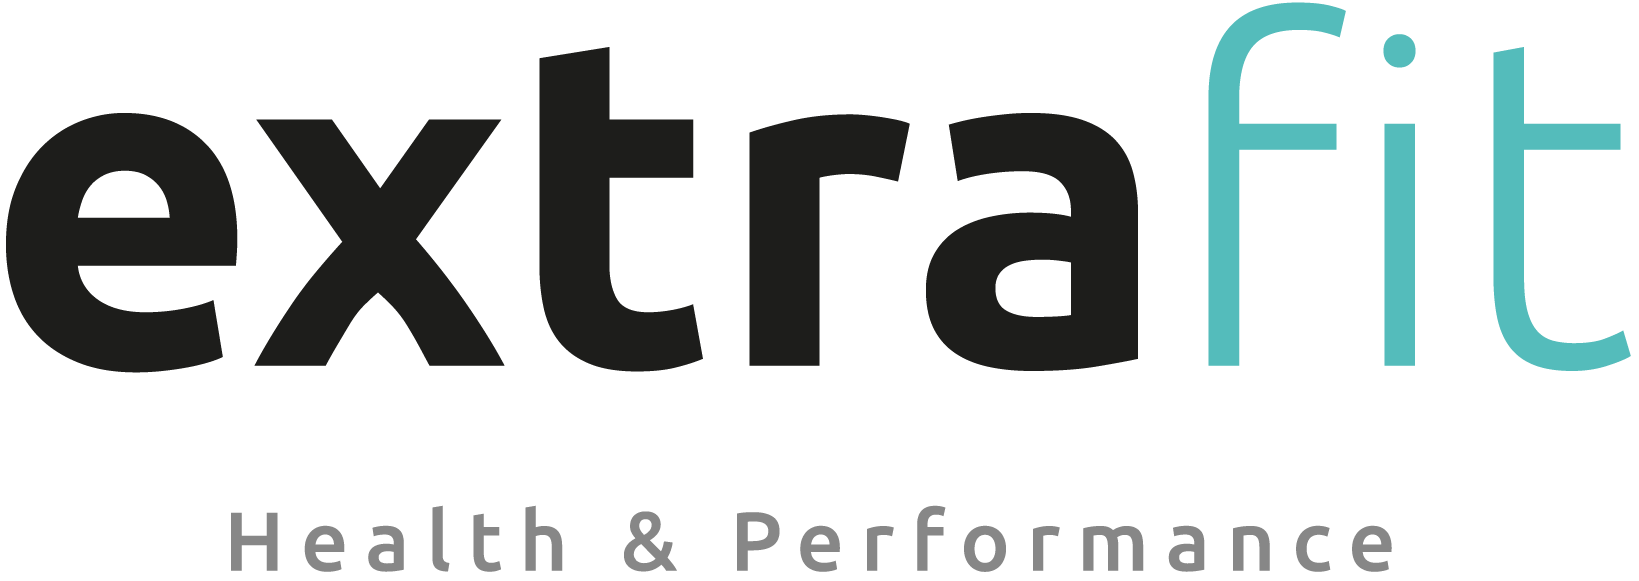 ExtraFit Health & Performance Clinic